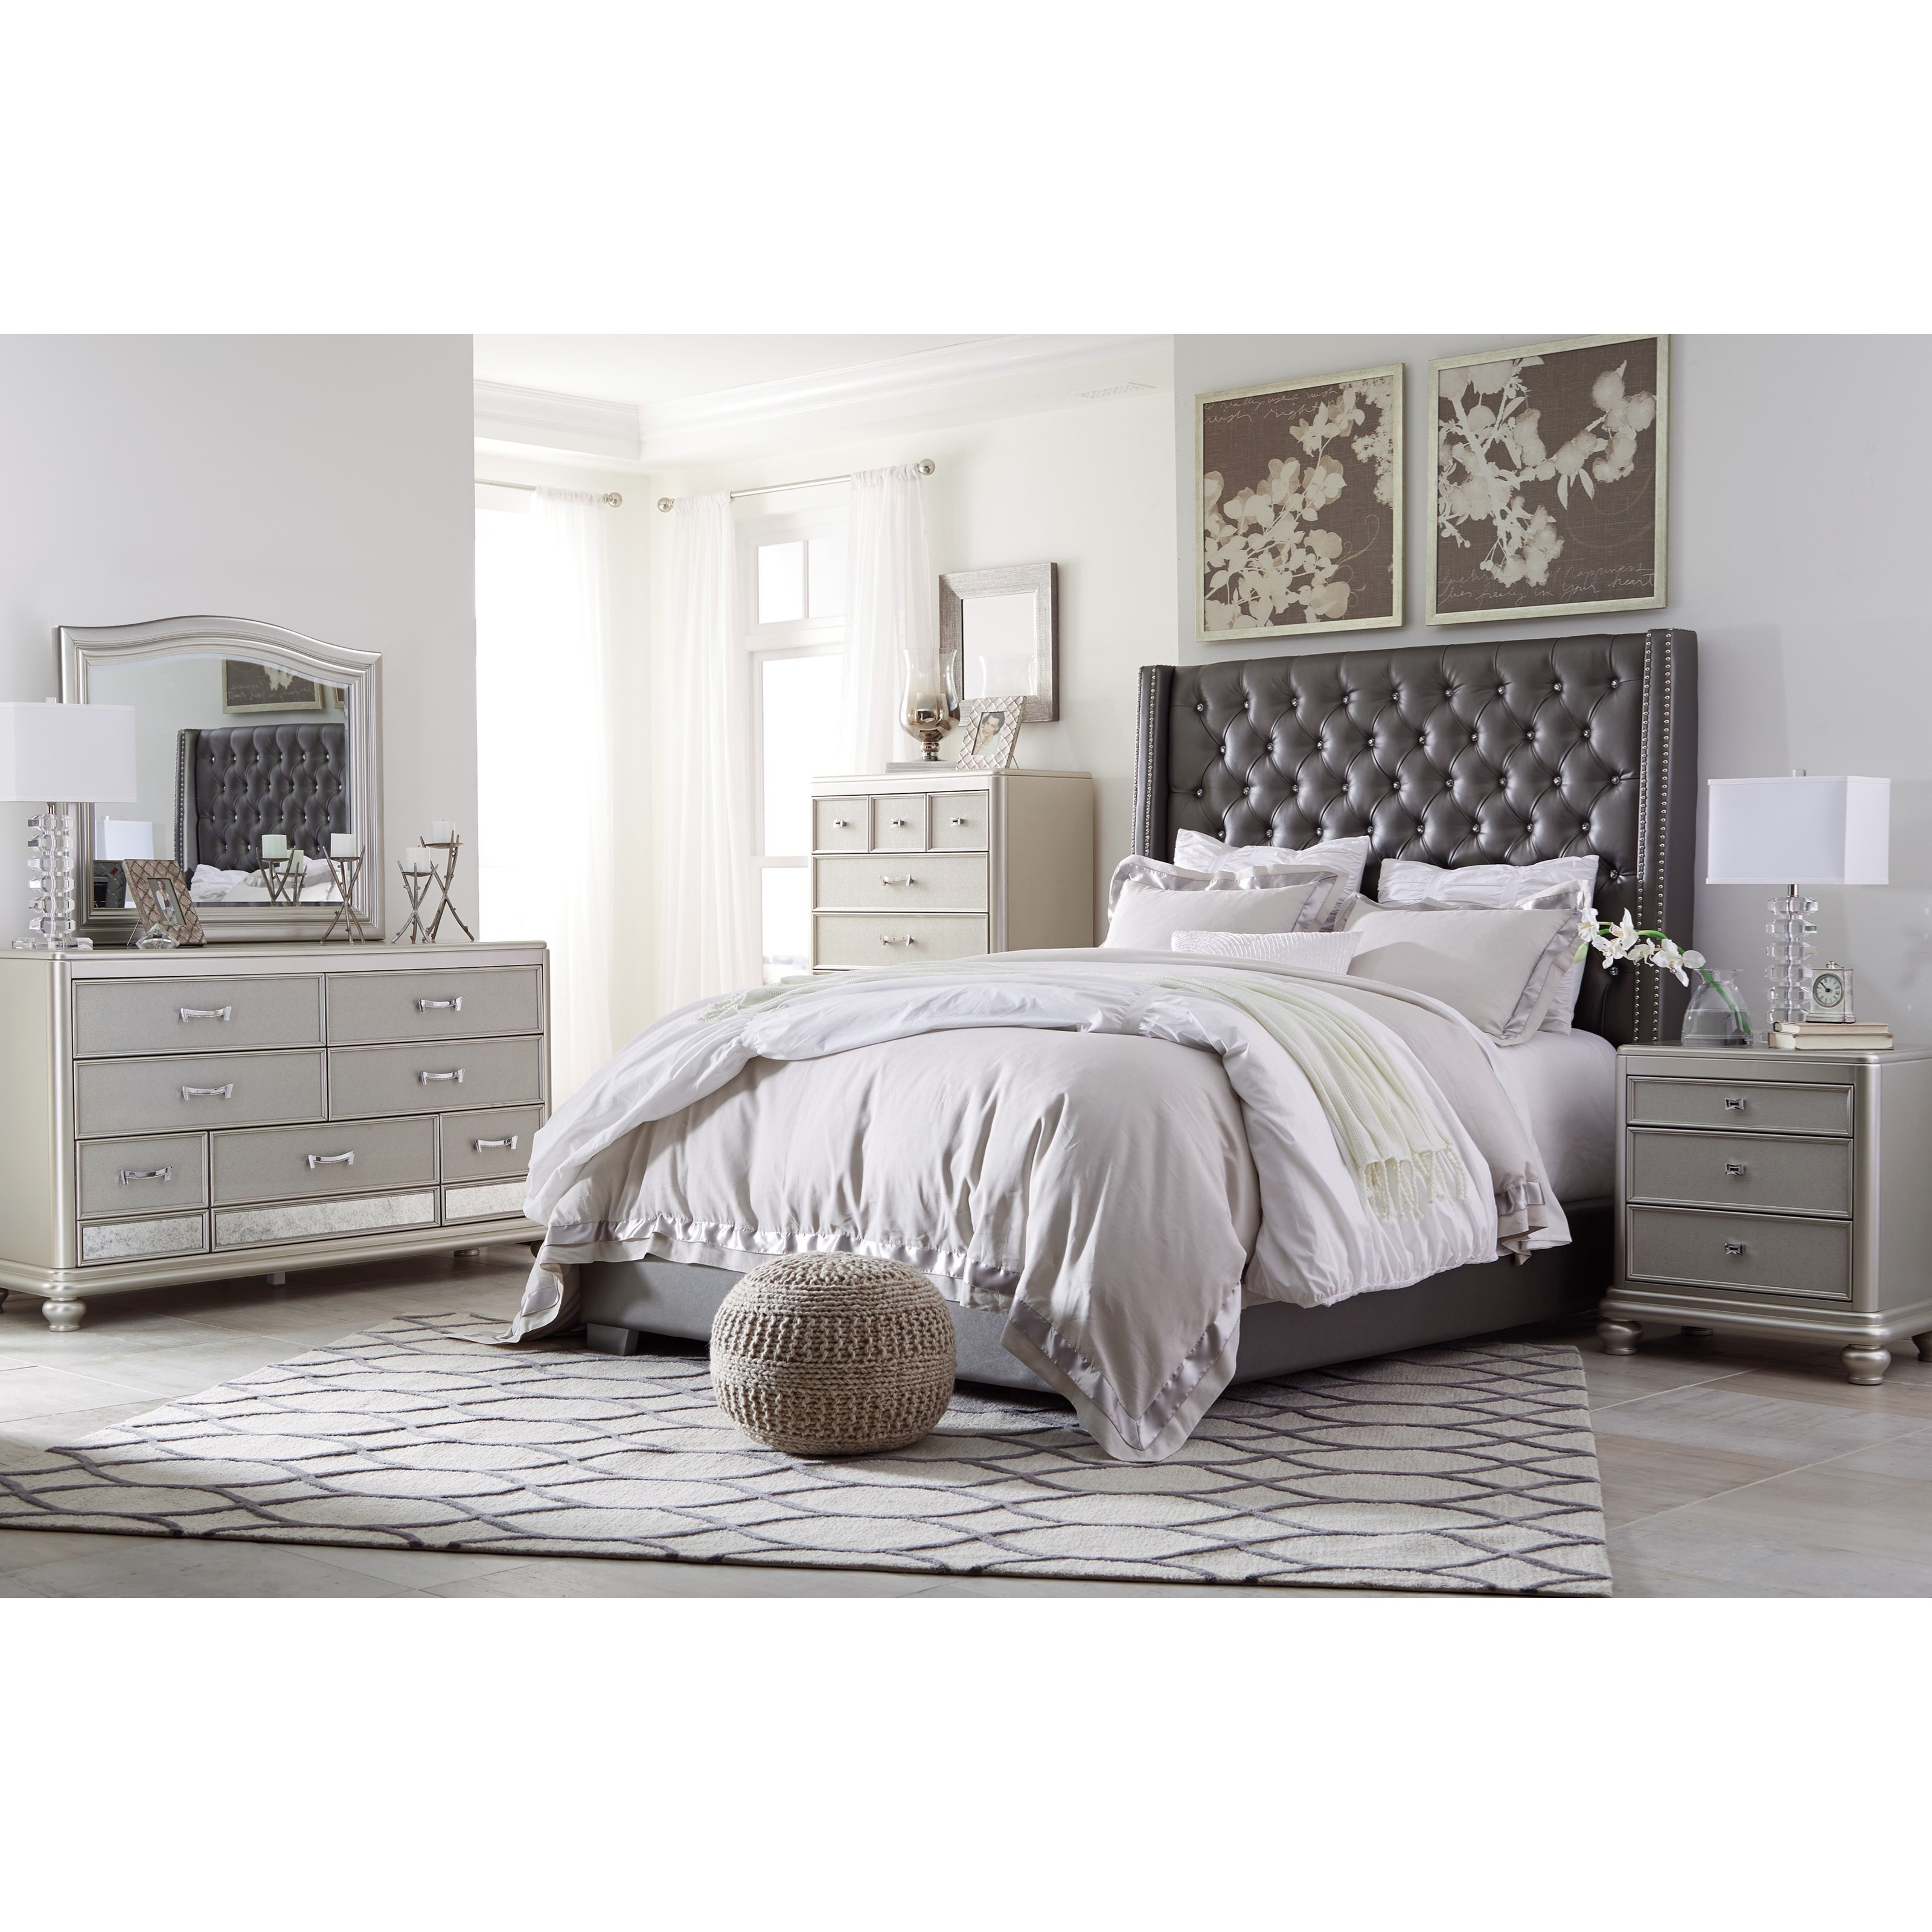 Signature Design by Ashley Coralayne Queen Bedroom Group - Item Number: B650 Q Bedroom Group 7